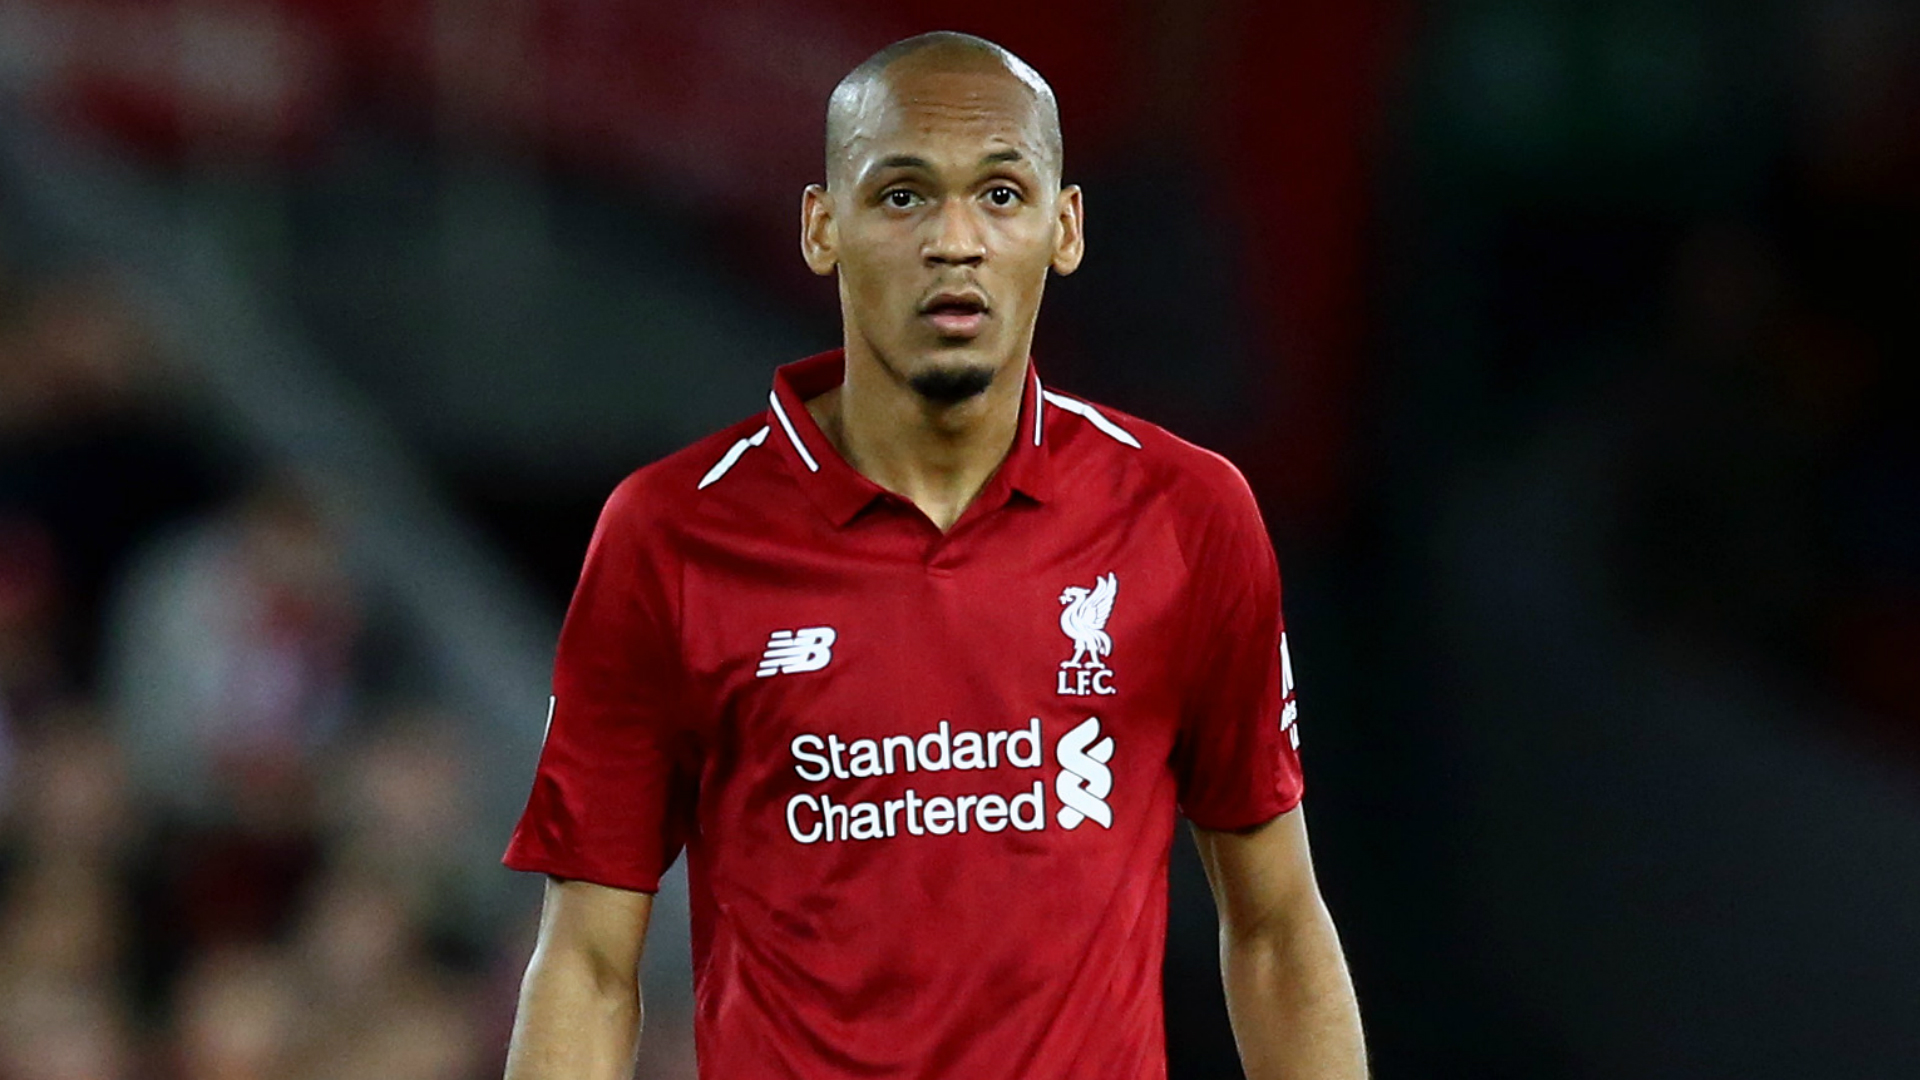 It wasn't easy – Fabinho on overcoming tough start at Liverpool